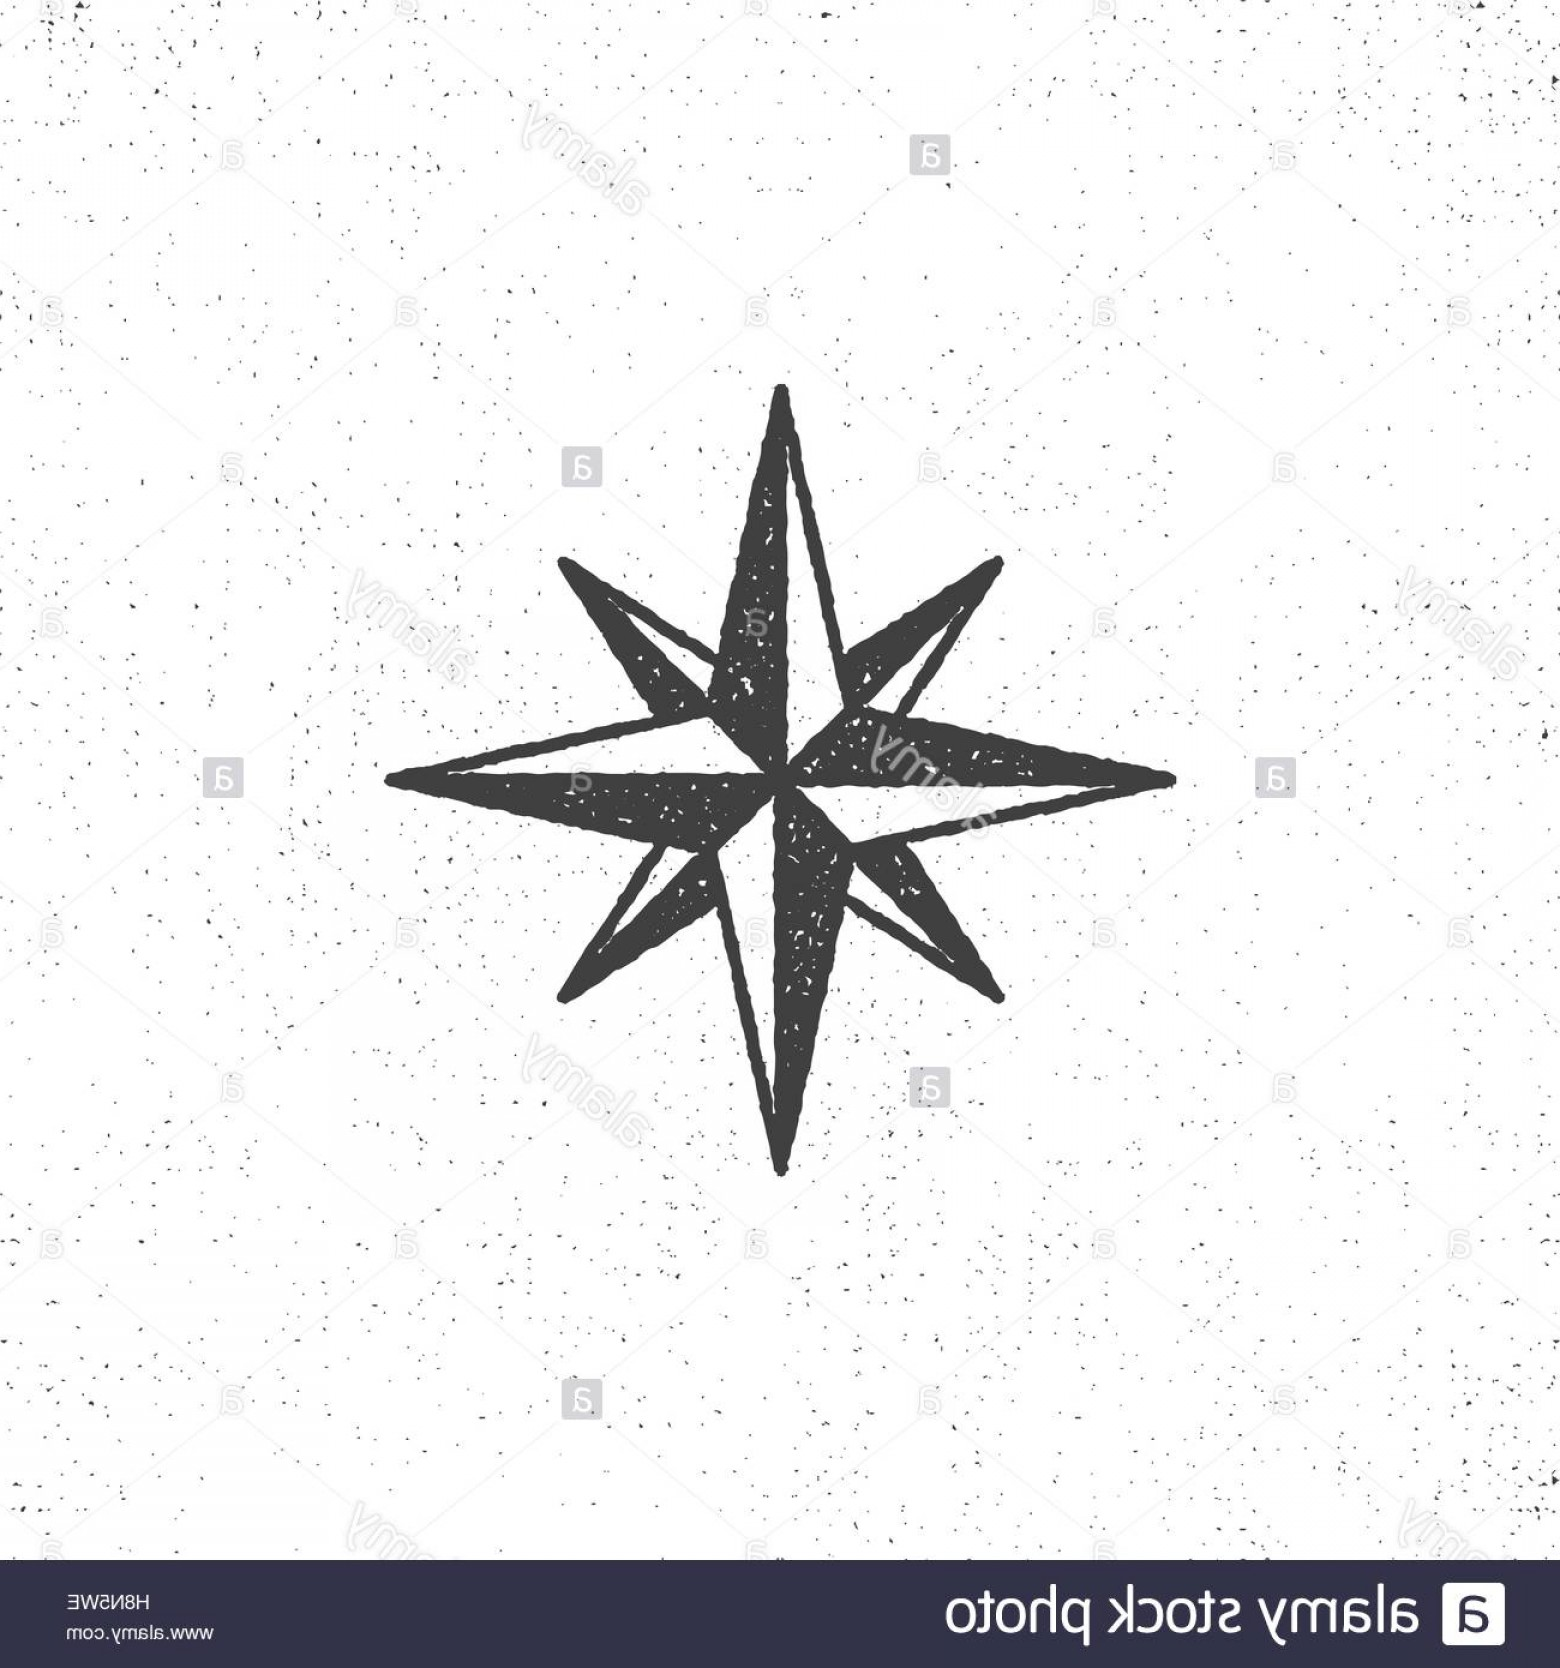 4 Point Nautical Star Vector: Stock Photo Vintage Wind Rose Symbol Or Icon In Rough Silhouette Nautical Style